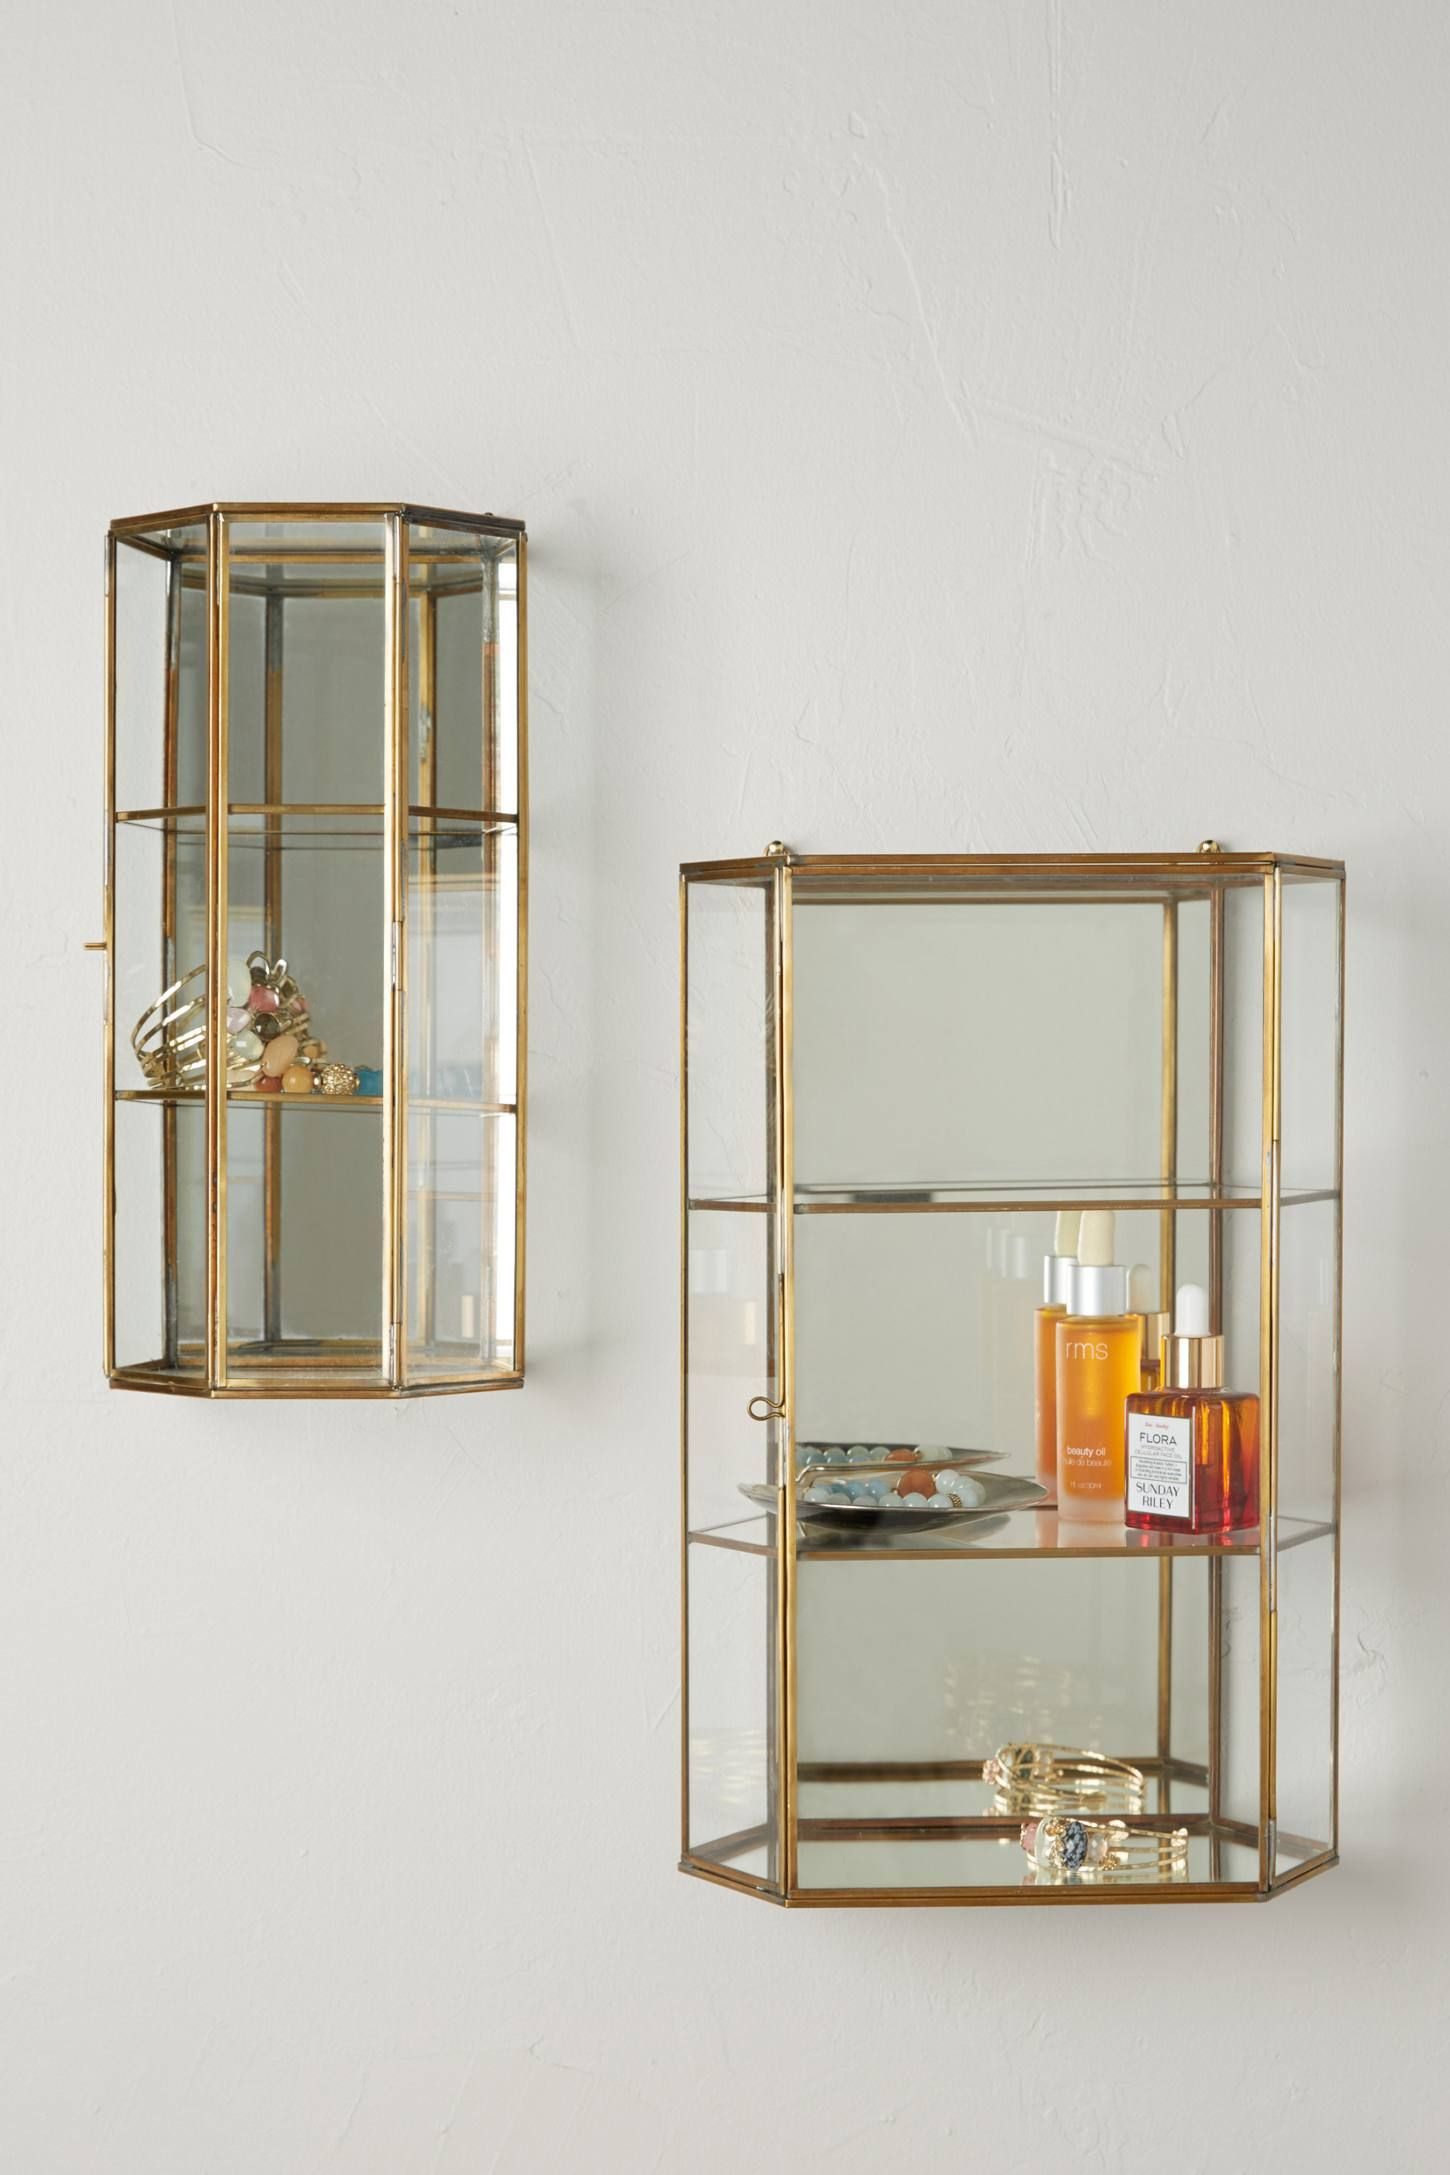 Elegant Shop The Wall Curio Cabinet And More Anthropologie At Anthropologie Today.  Read Customer Reviews, Discover Product Details And More.